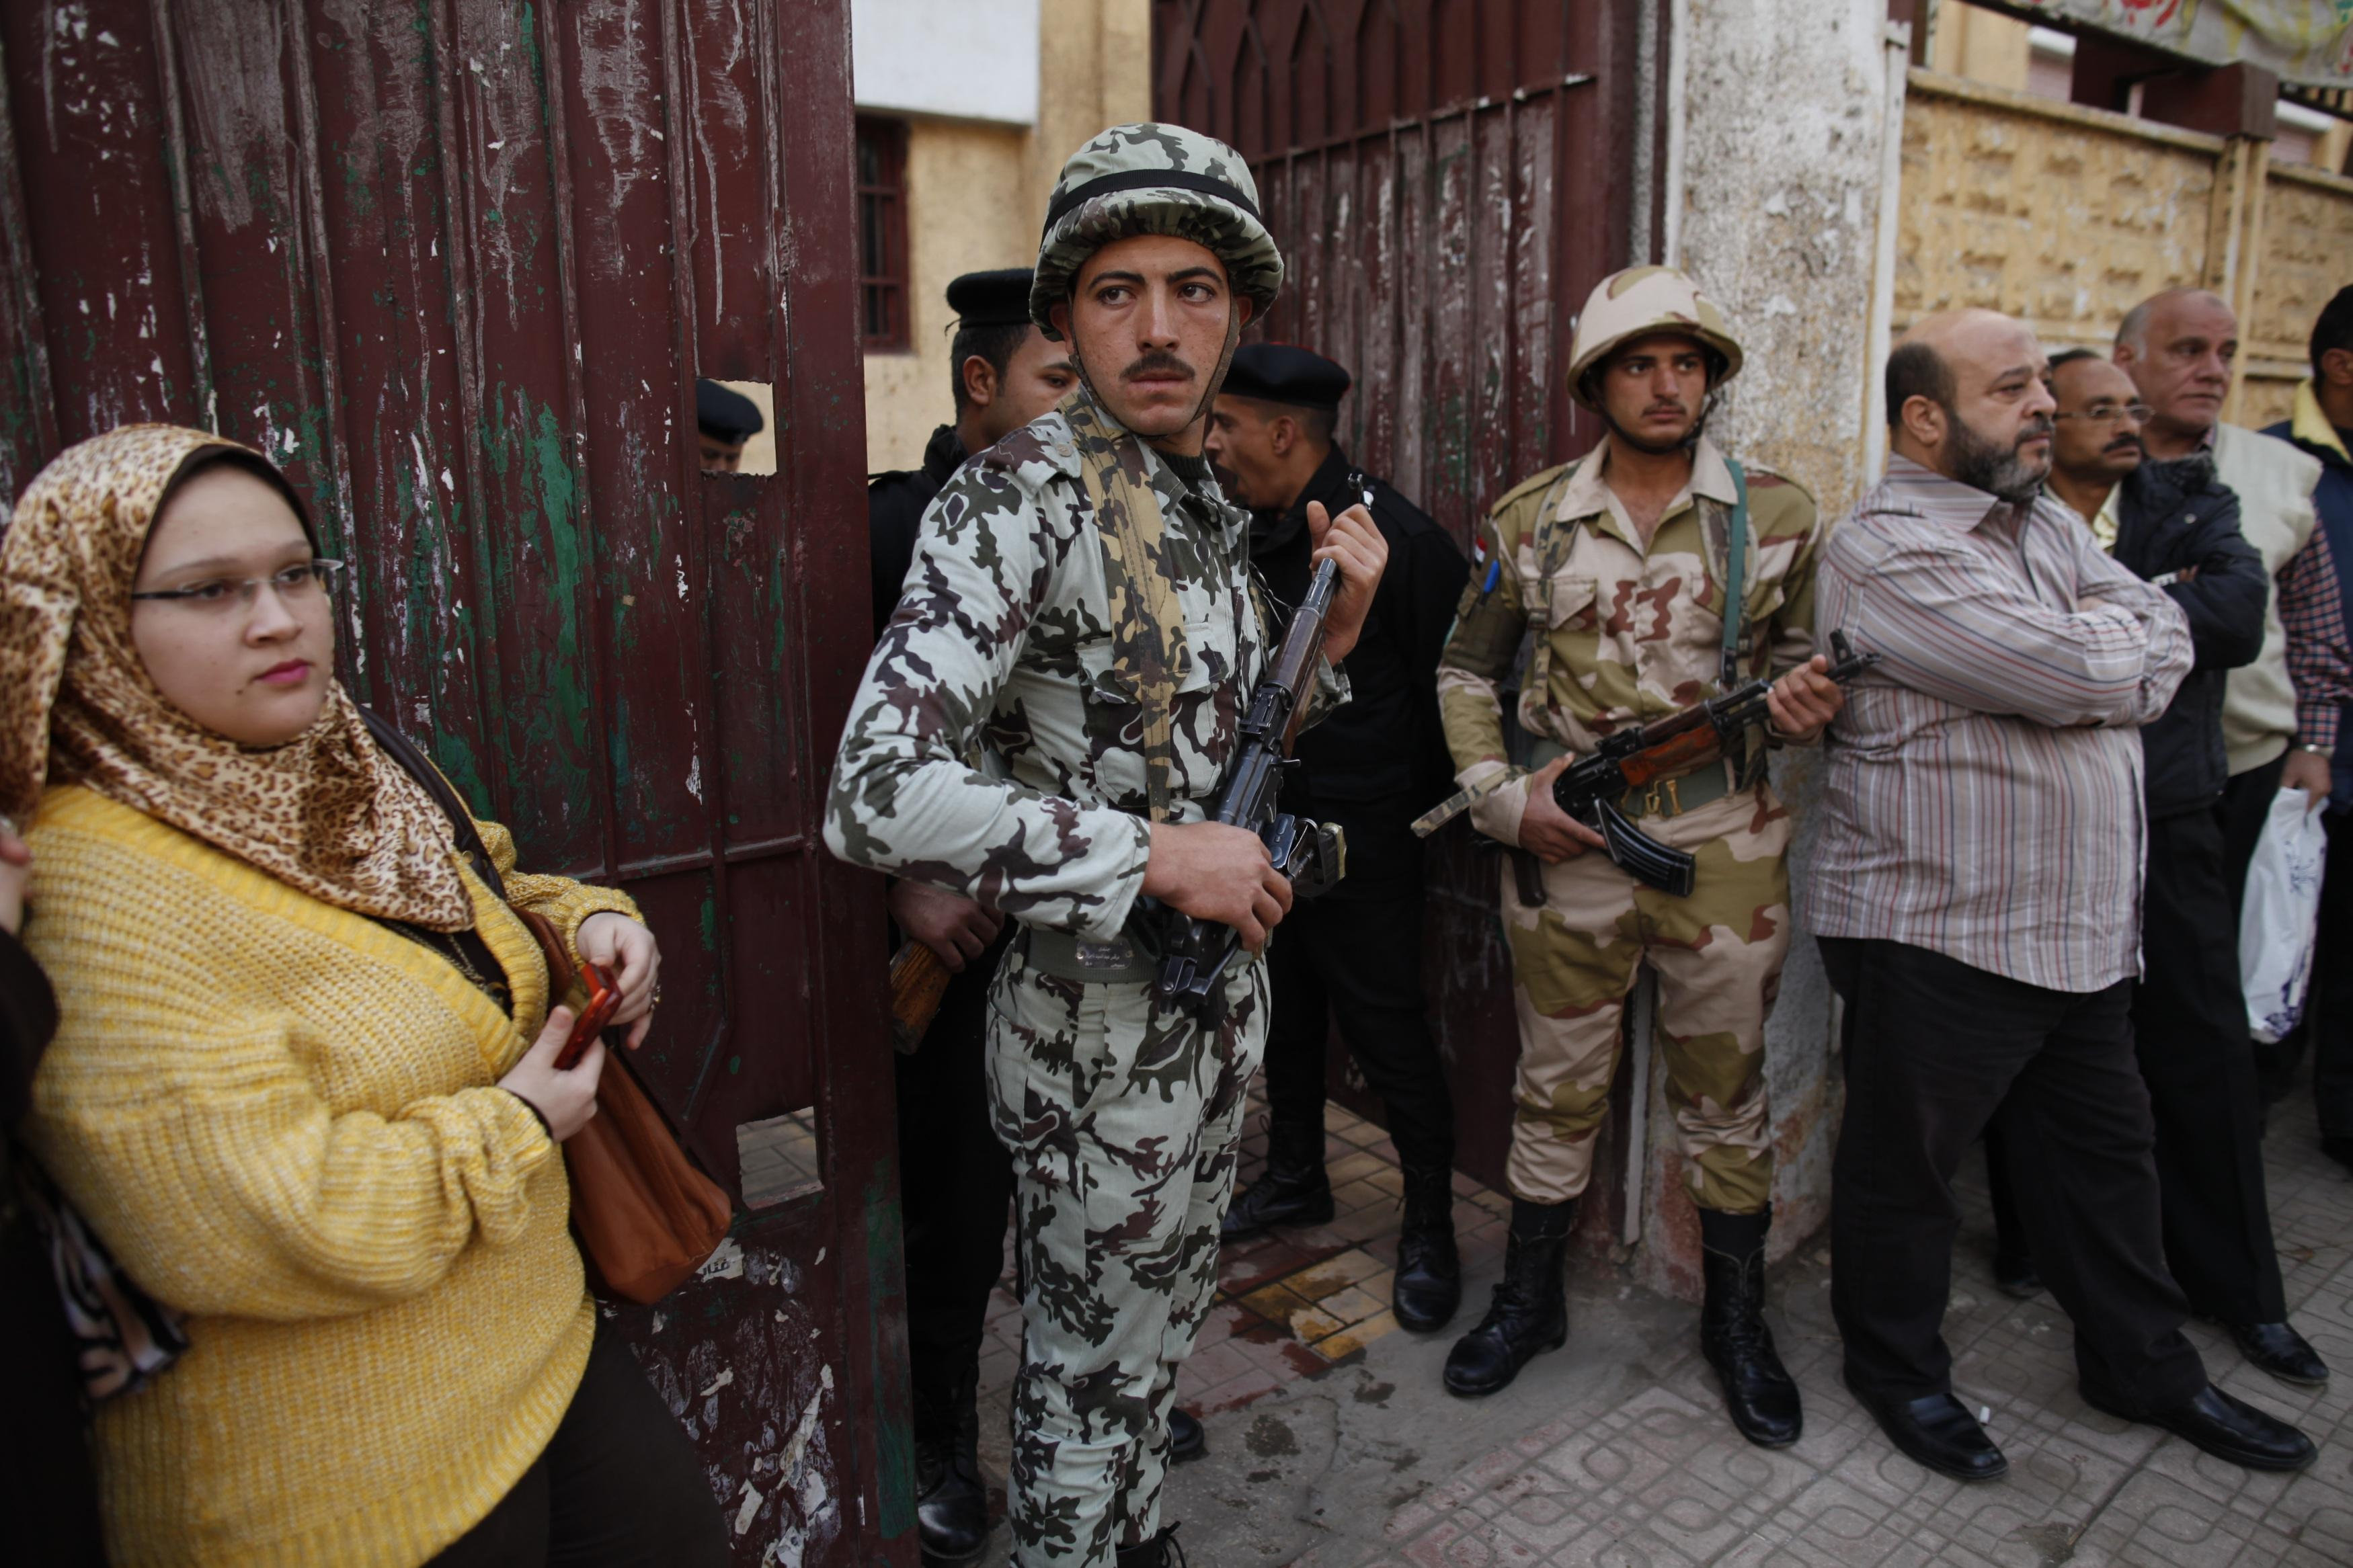 Egyptians vote on divisive constitution